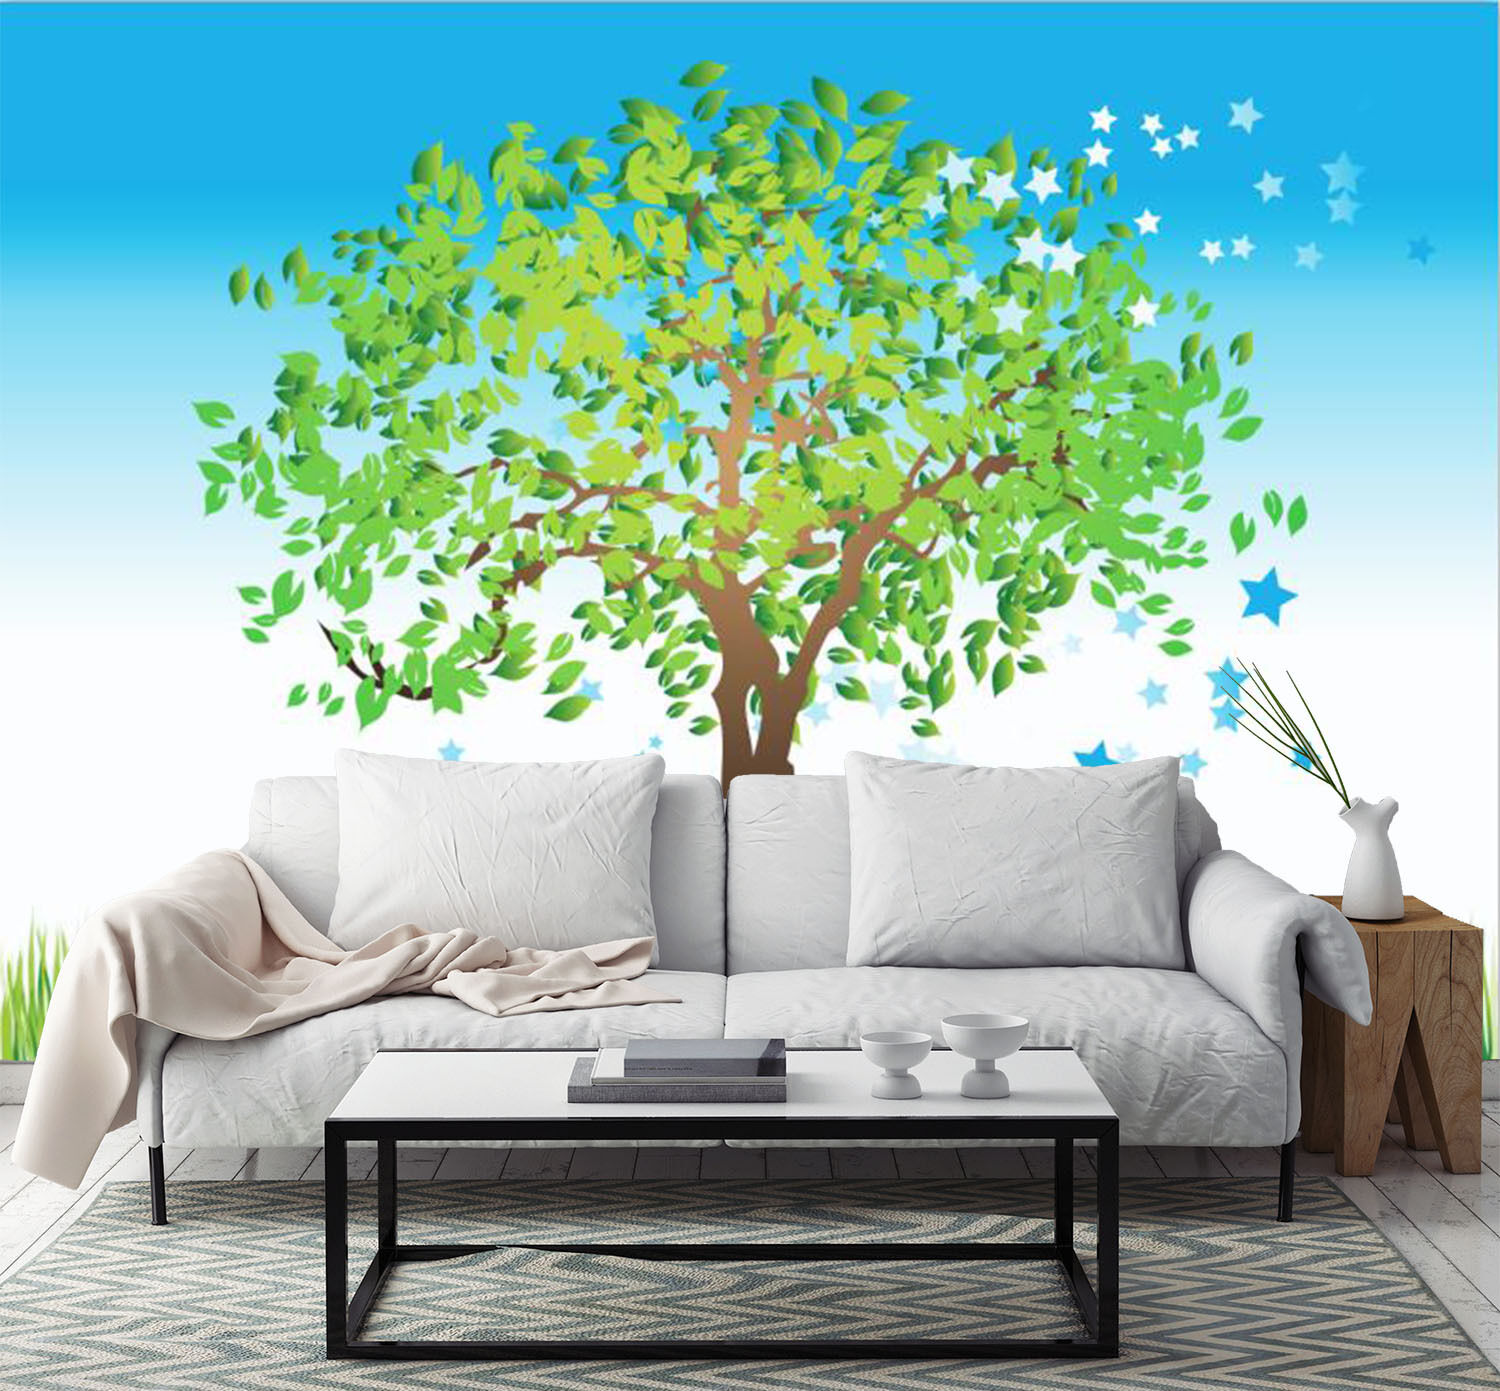 3D Green Tree bluee Stars 1 Wall Paper Print Decal Wall Deco Indoor wall Mural